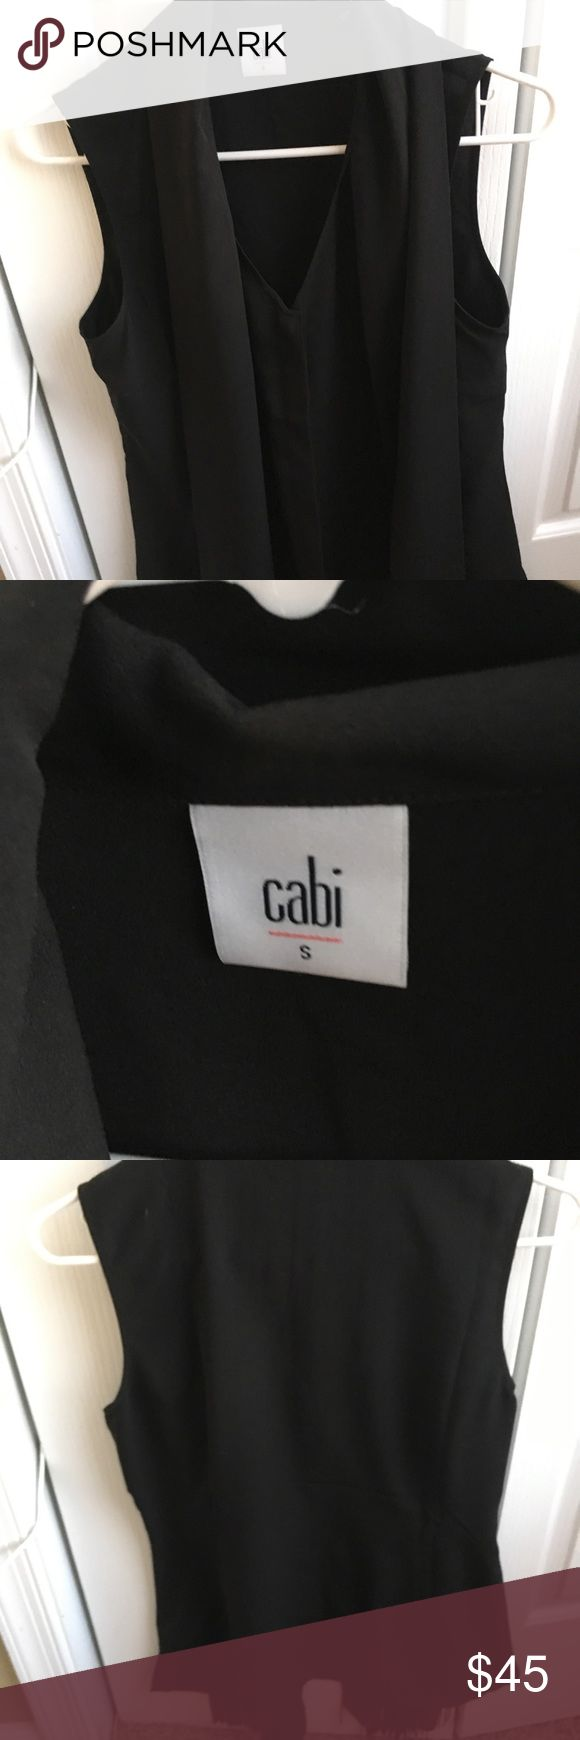 Cabi Fringe Blouse - 3430 Beautiful black Cabi Fringe Blouse in size small. Brand new. Never worn only tried on. CAbi Tops Blouses